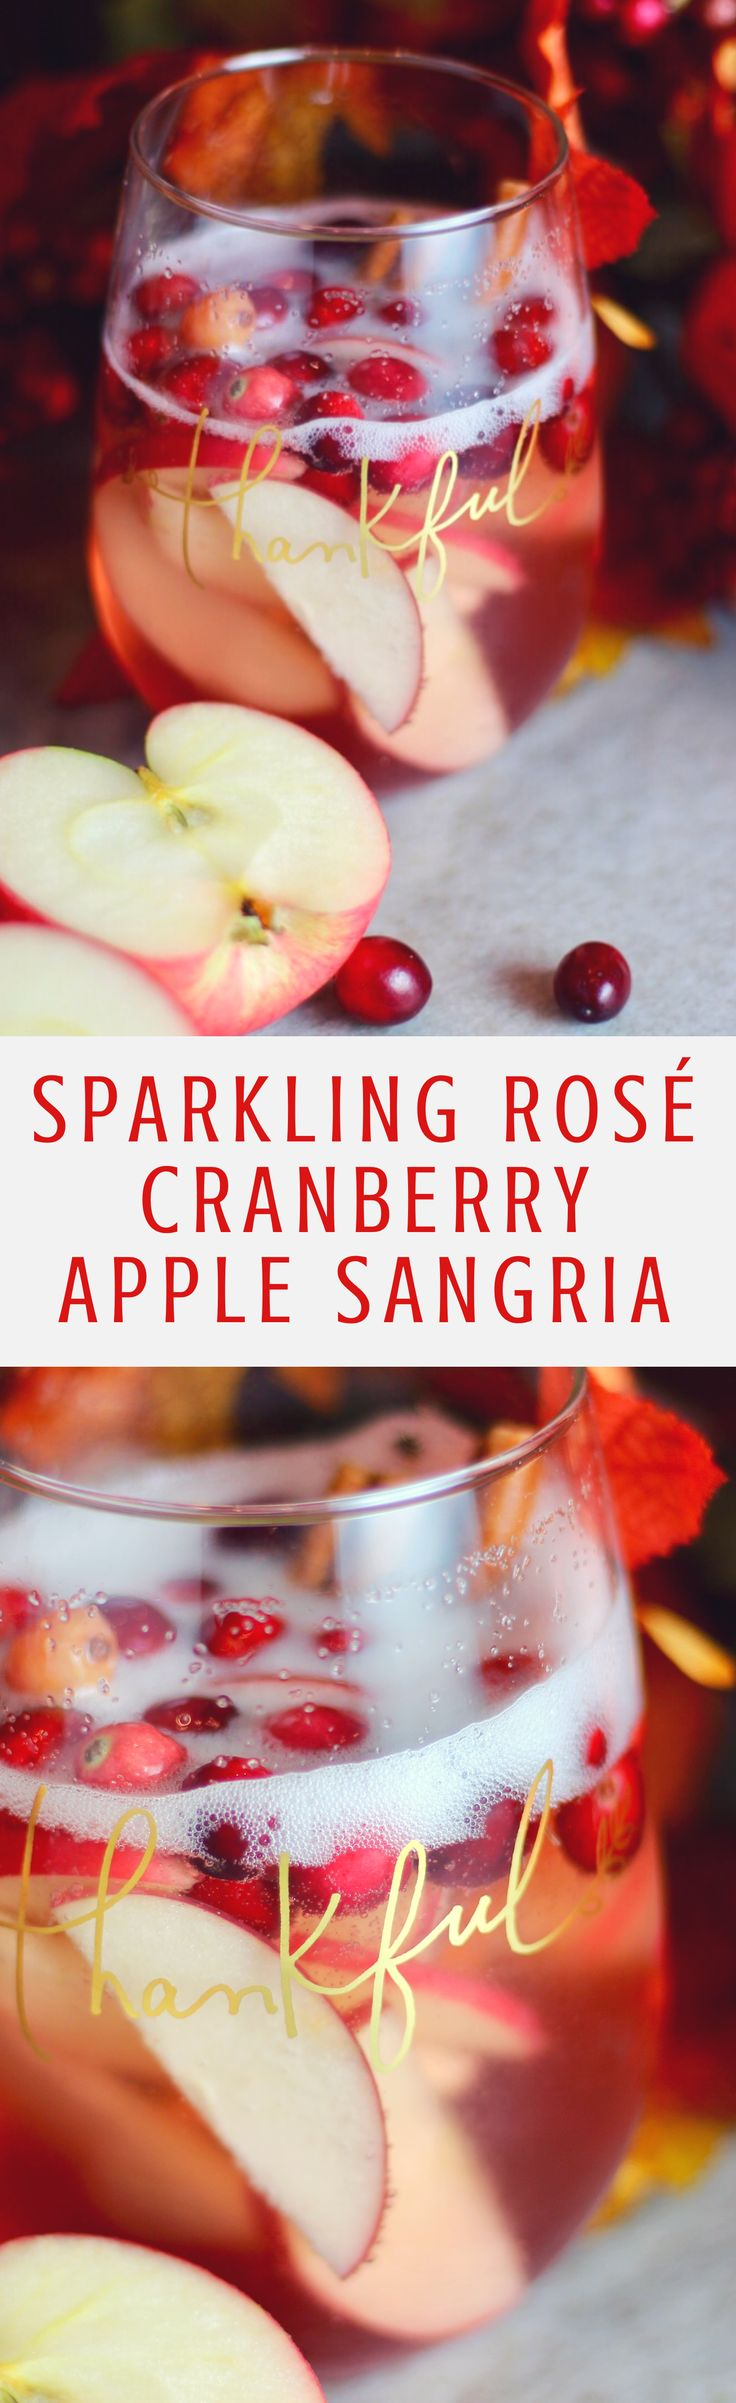 Thanksgiving Cocktail Sparkling Rose Cranberry Apple Sangria